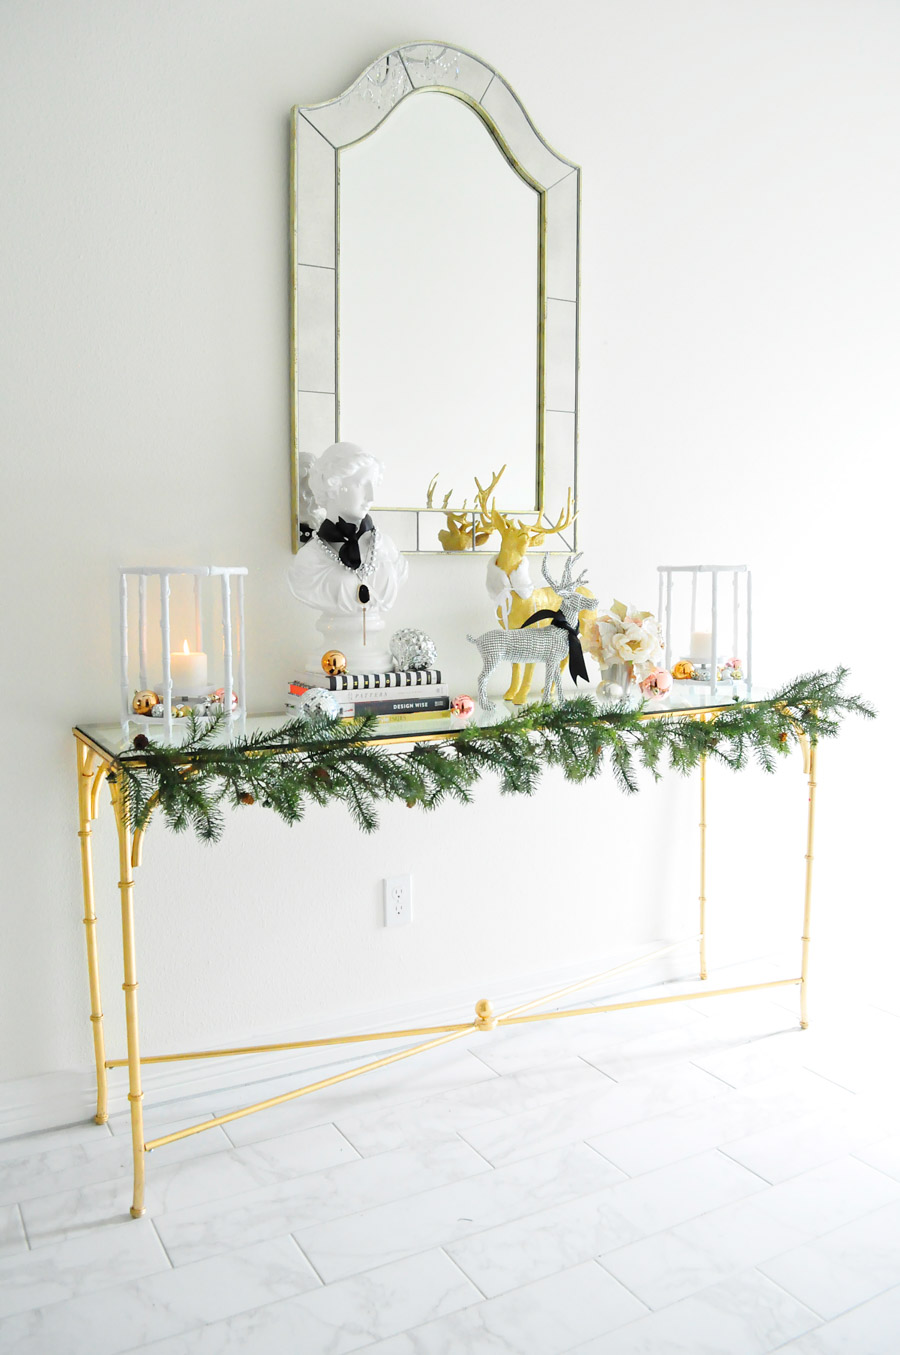 Gold bamboo console table adorned with holiday decor in blush, silver, gold and white. Chic and classic foyer with a black tray ceiling and tiled marble floors.